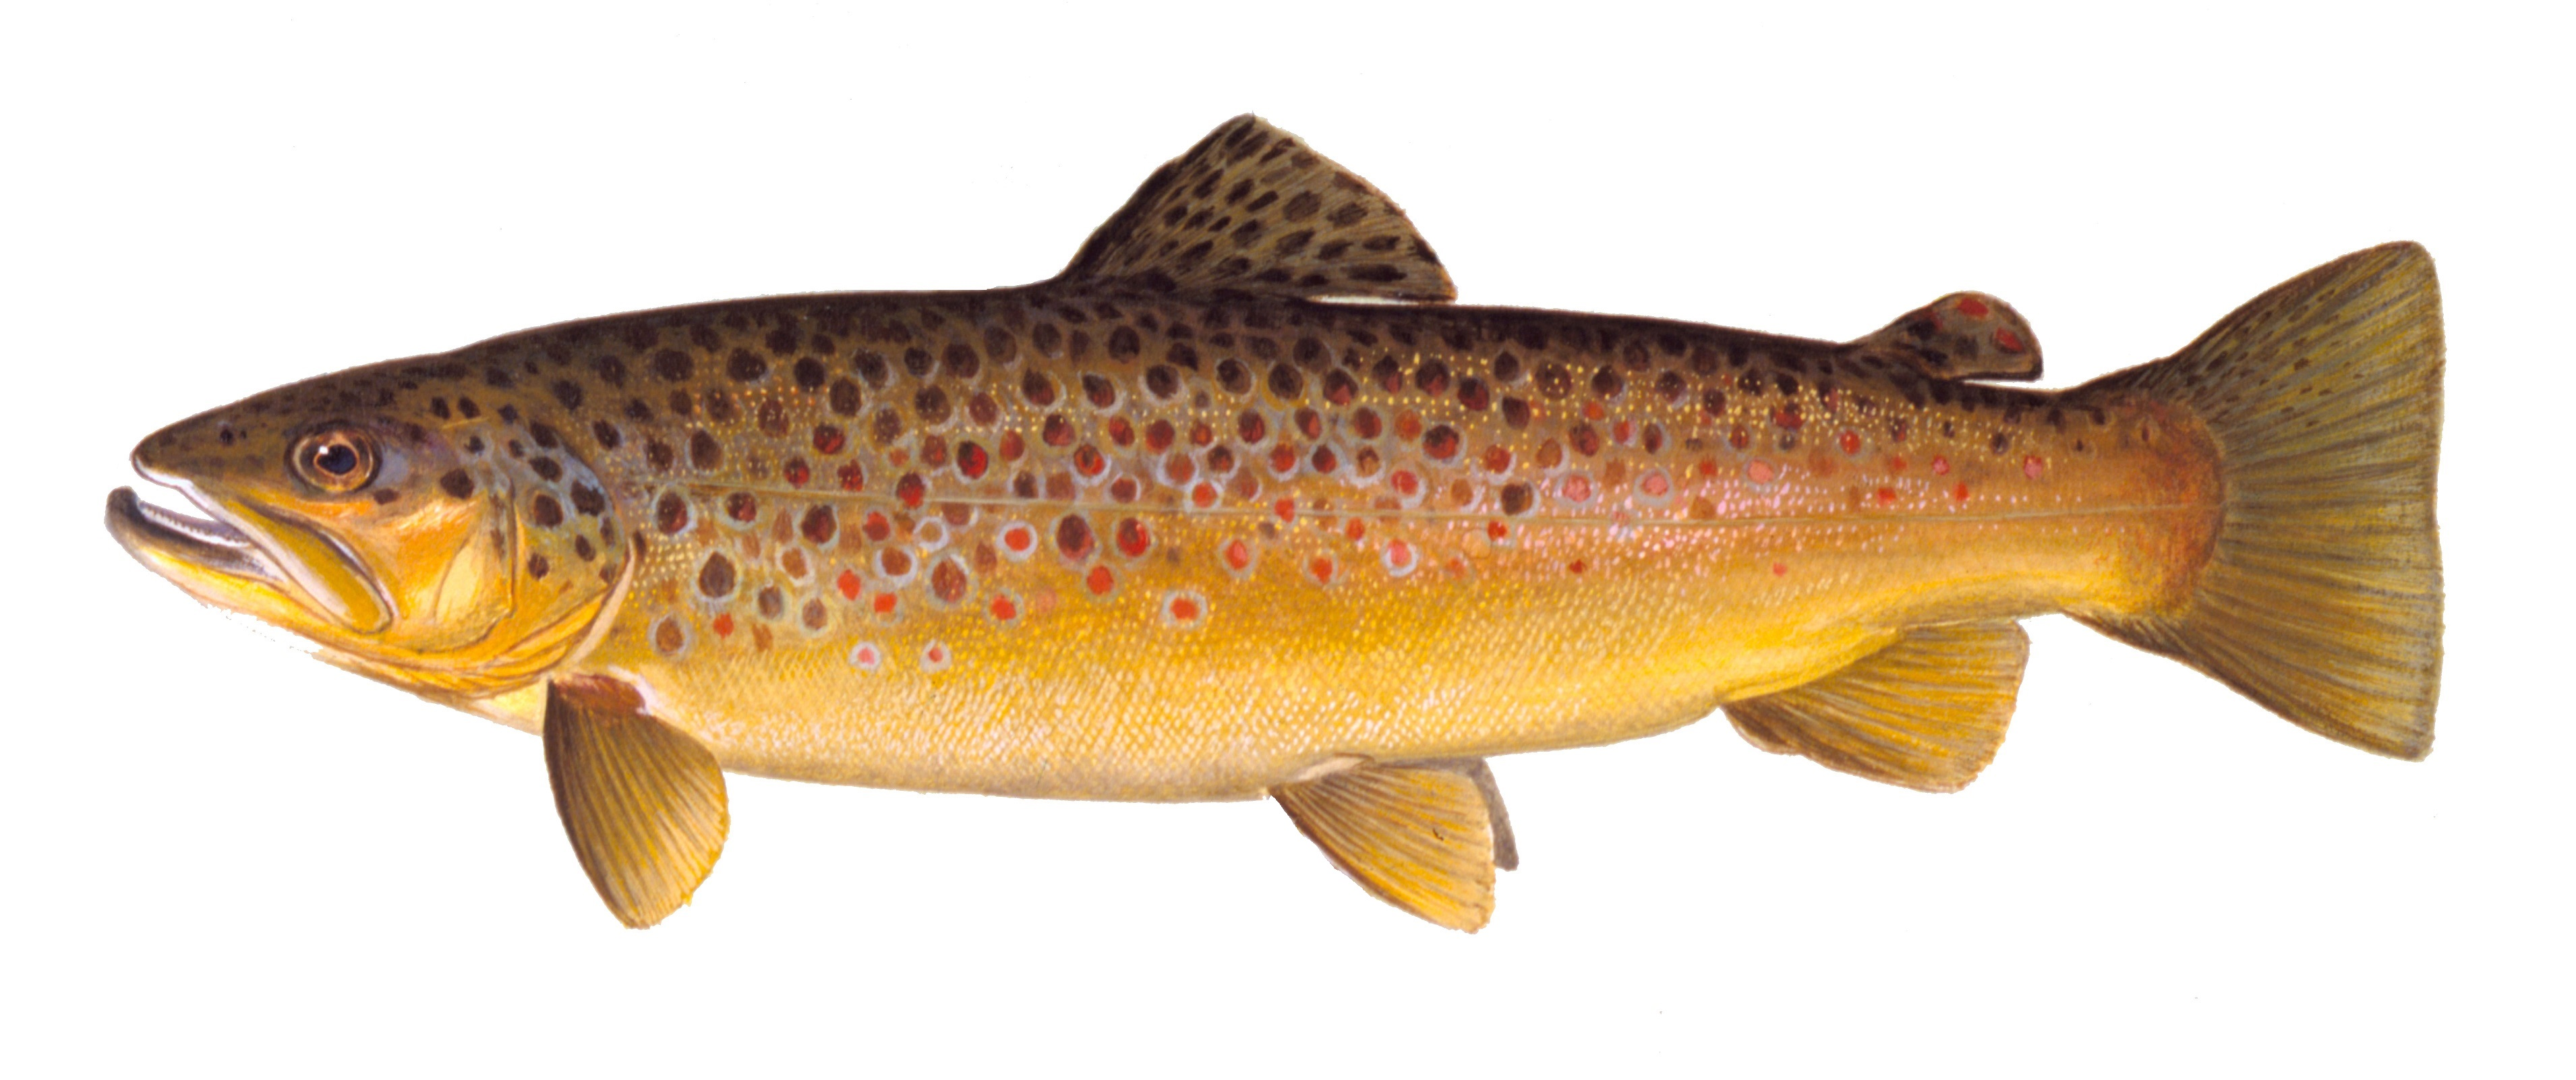 Brown Trout, illustration by Maynard Reece, from Iowa Fish and Fishing.